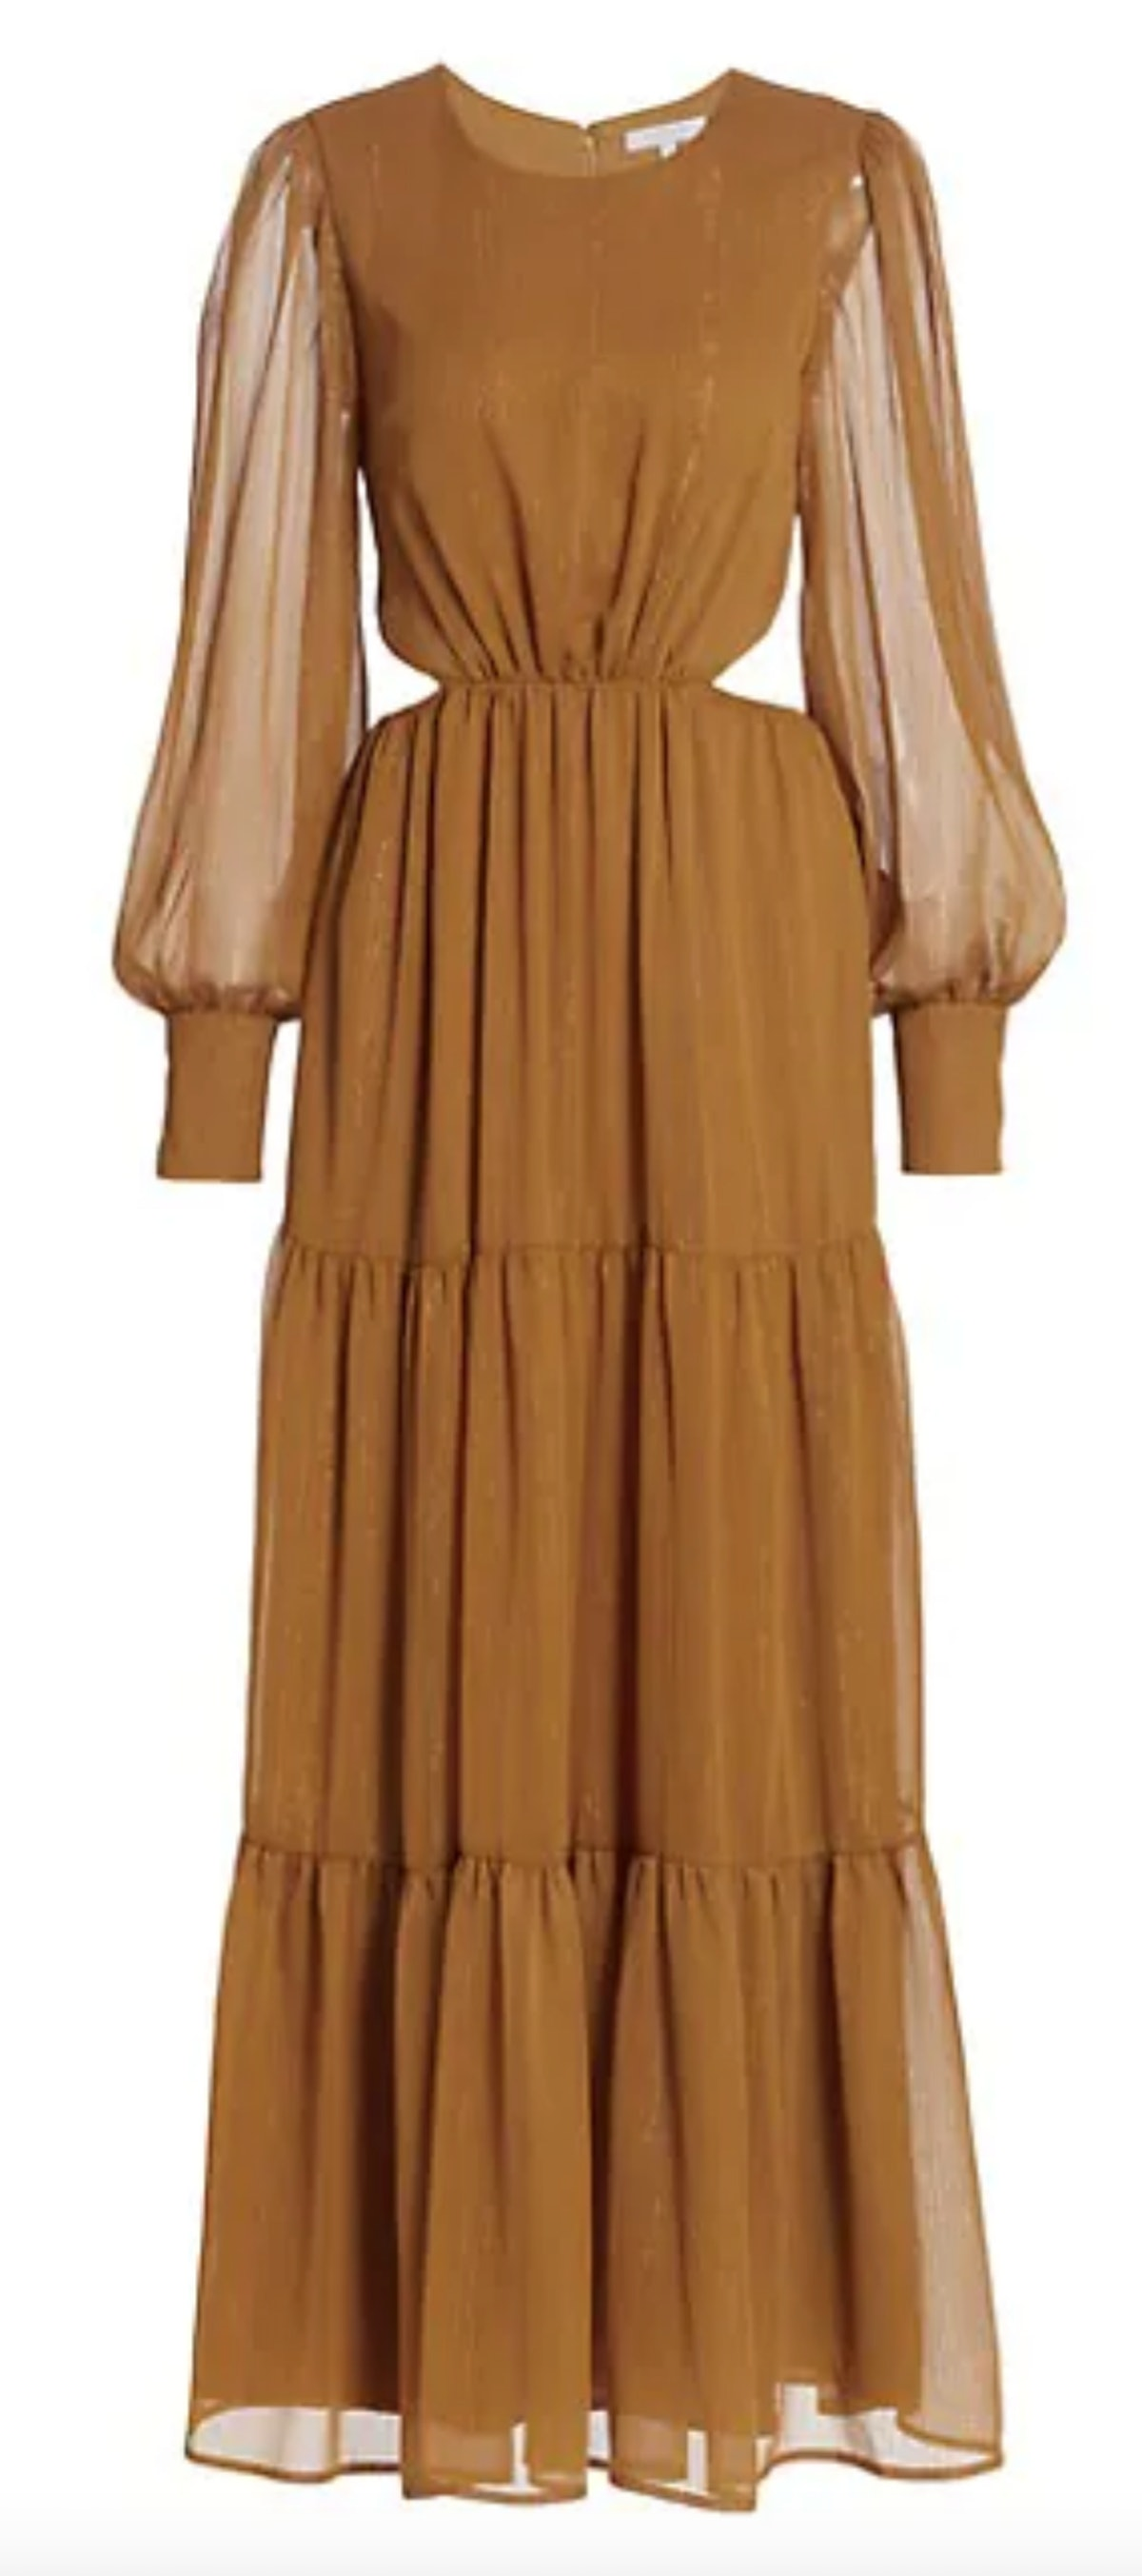 Wayf's Gina tiered cutout maxi dress in the color saffron.